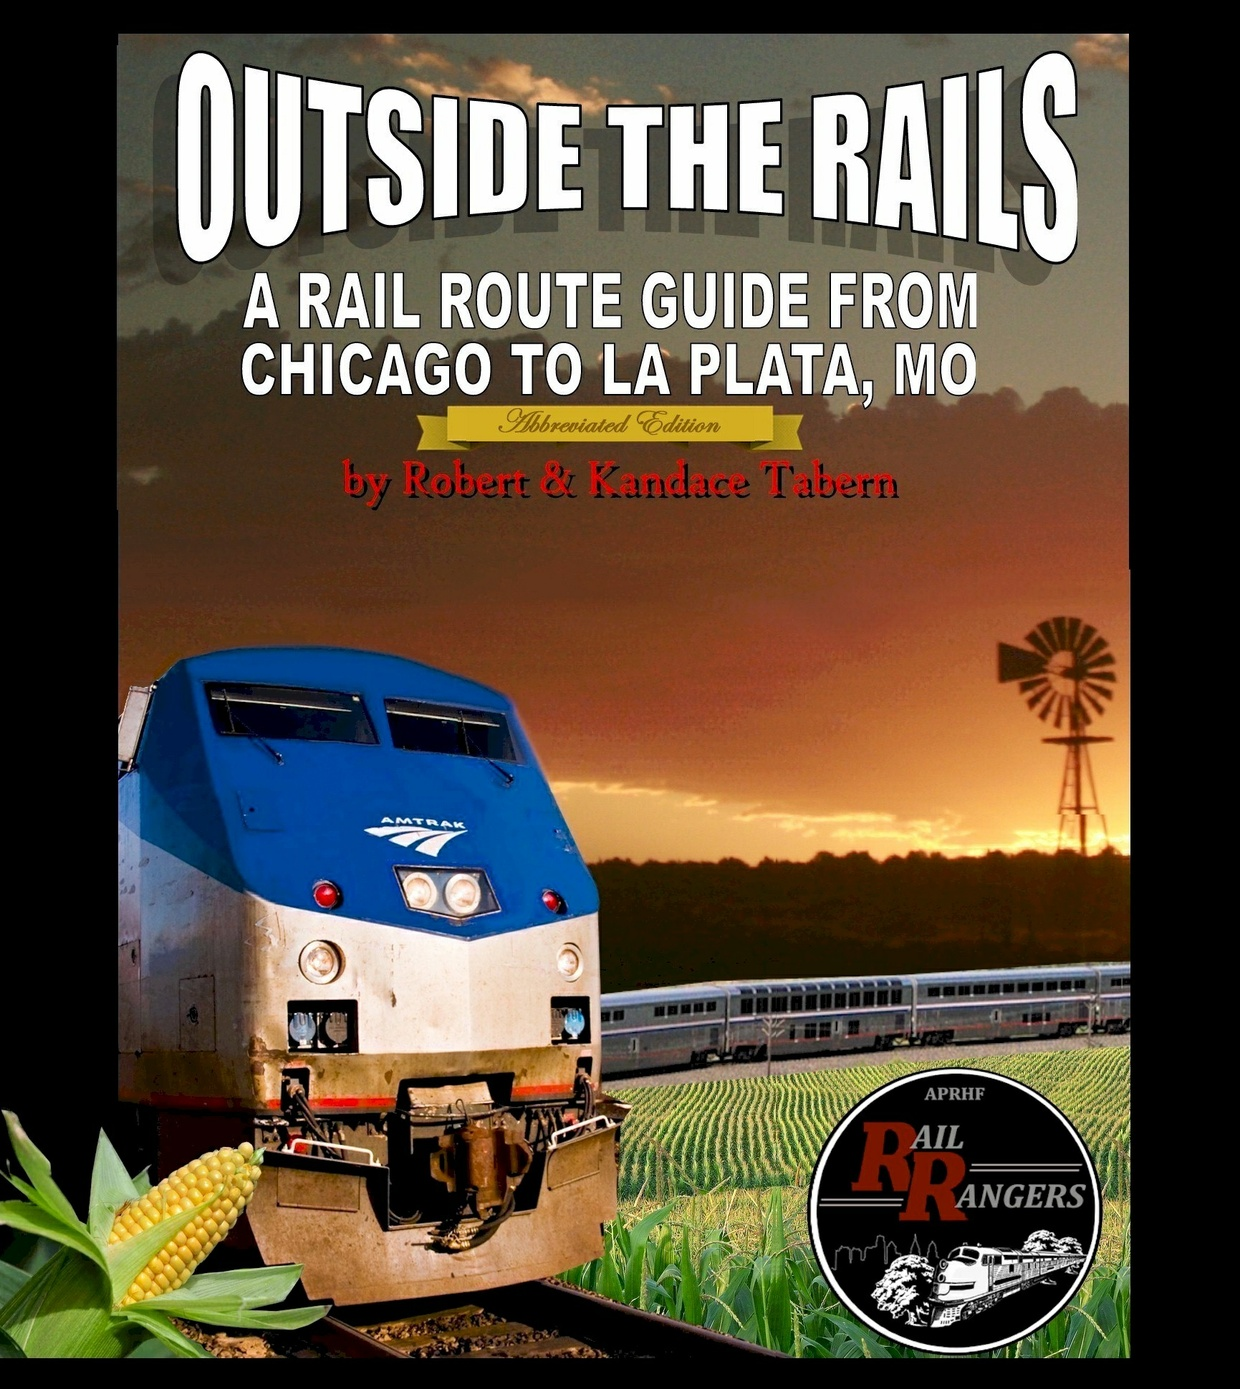 Outside the Rails: A Rail Route Guide from Chicago to La Plata, MO (Abbreviated Edition)